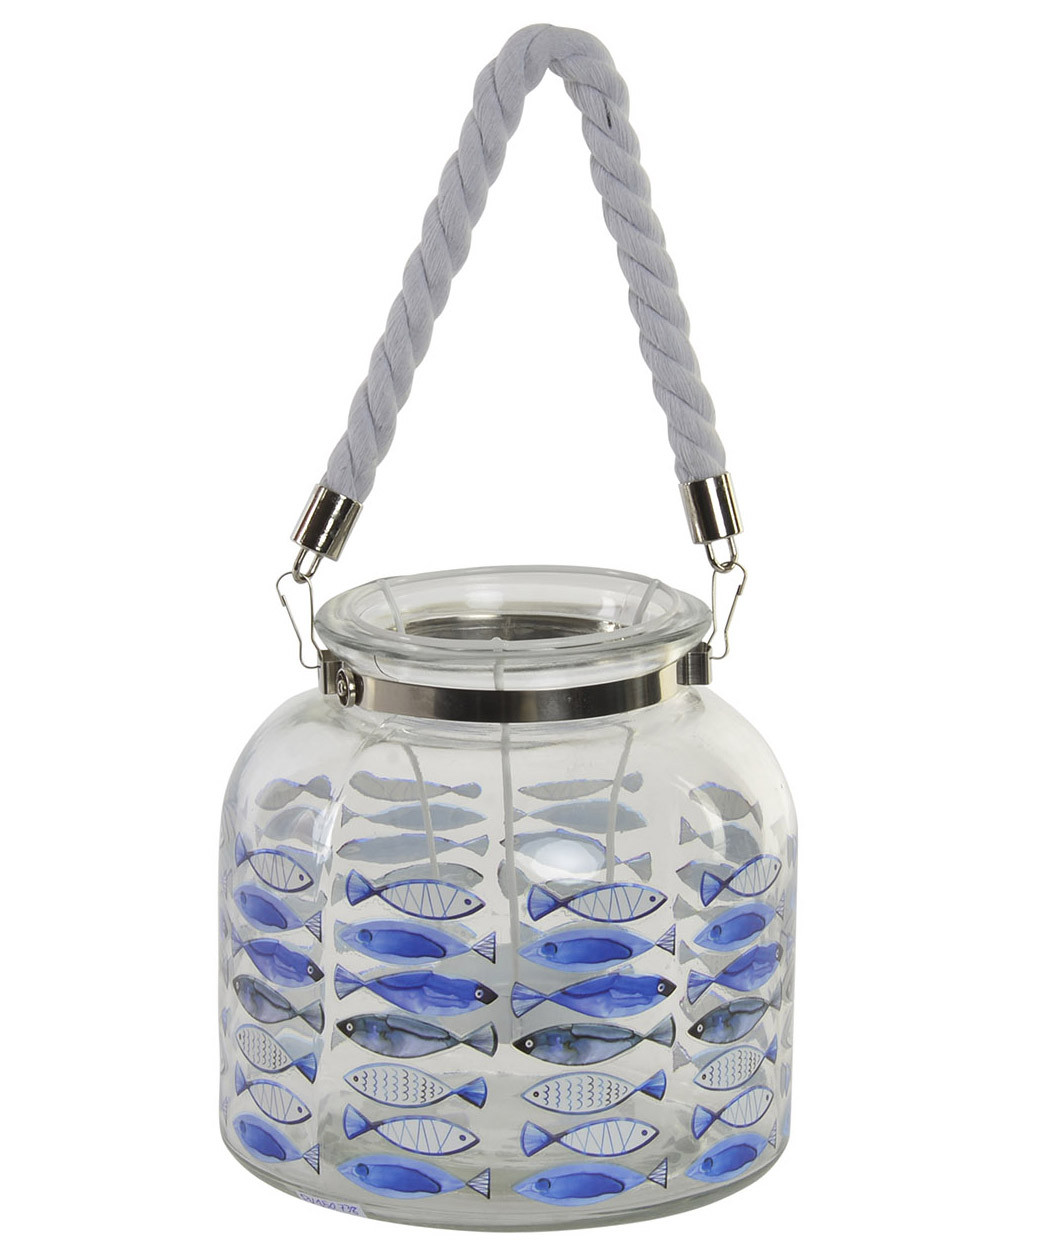 Candle holder glass blue fish for decoration. Design nice and original. 18 x 18 cm - Home and more